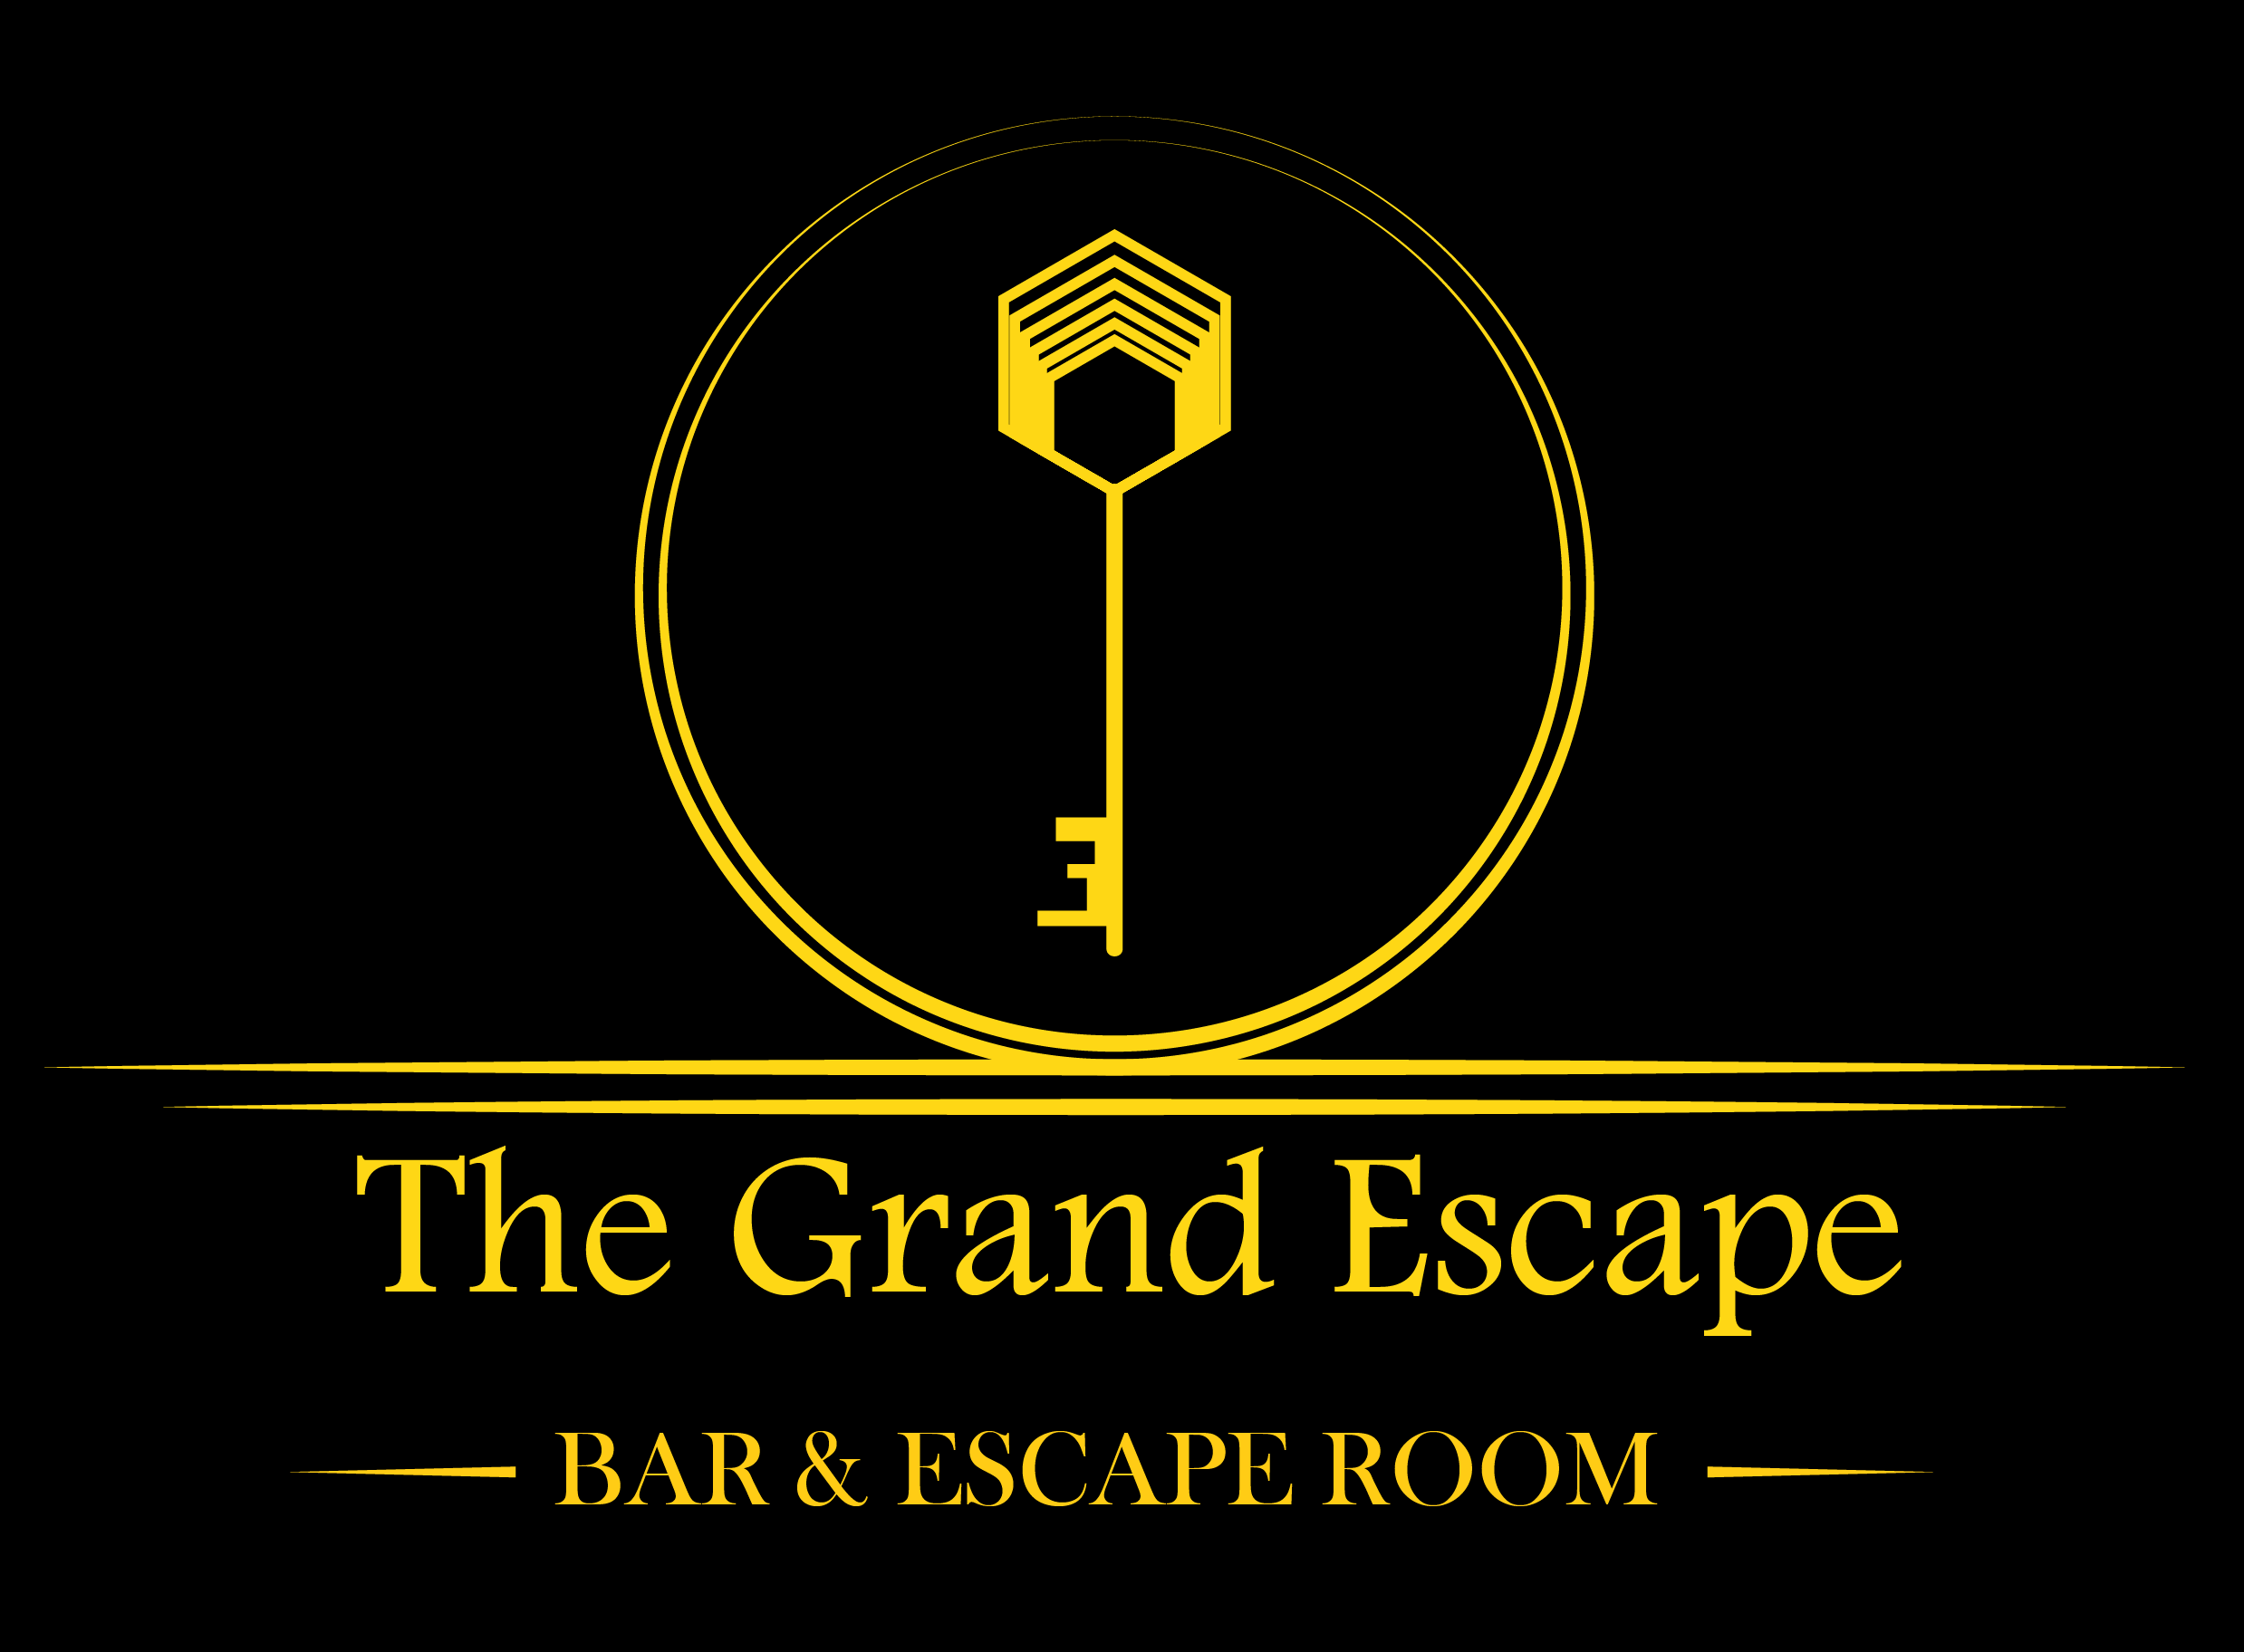 The Grand Escape logo